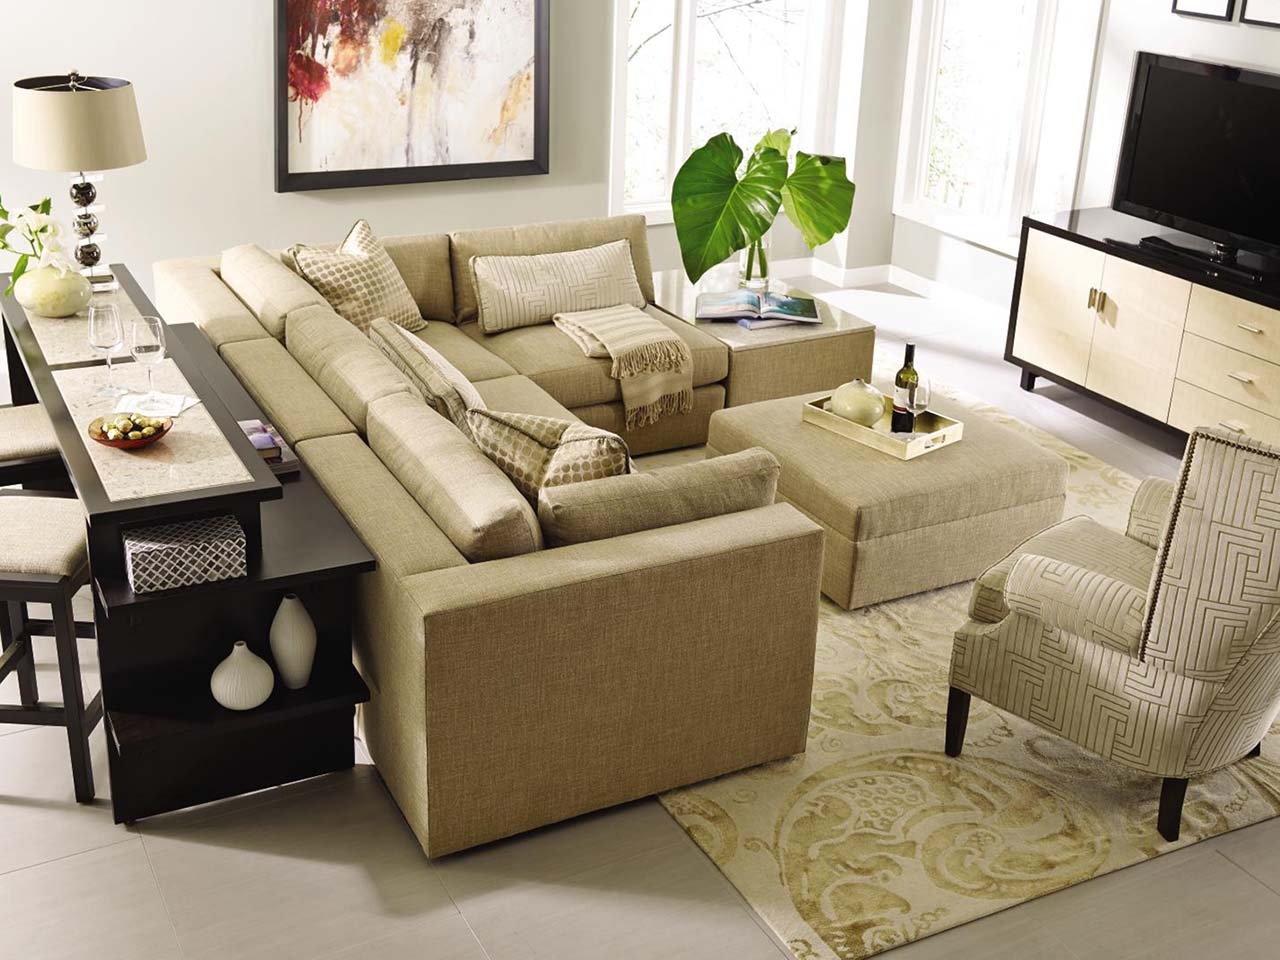 Interior Designer Products Cheap Interior Felt Products